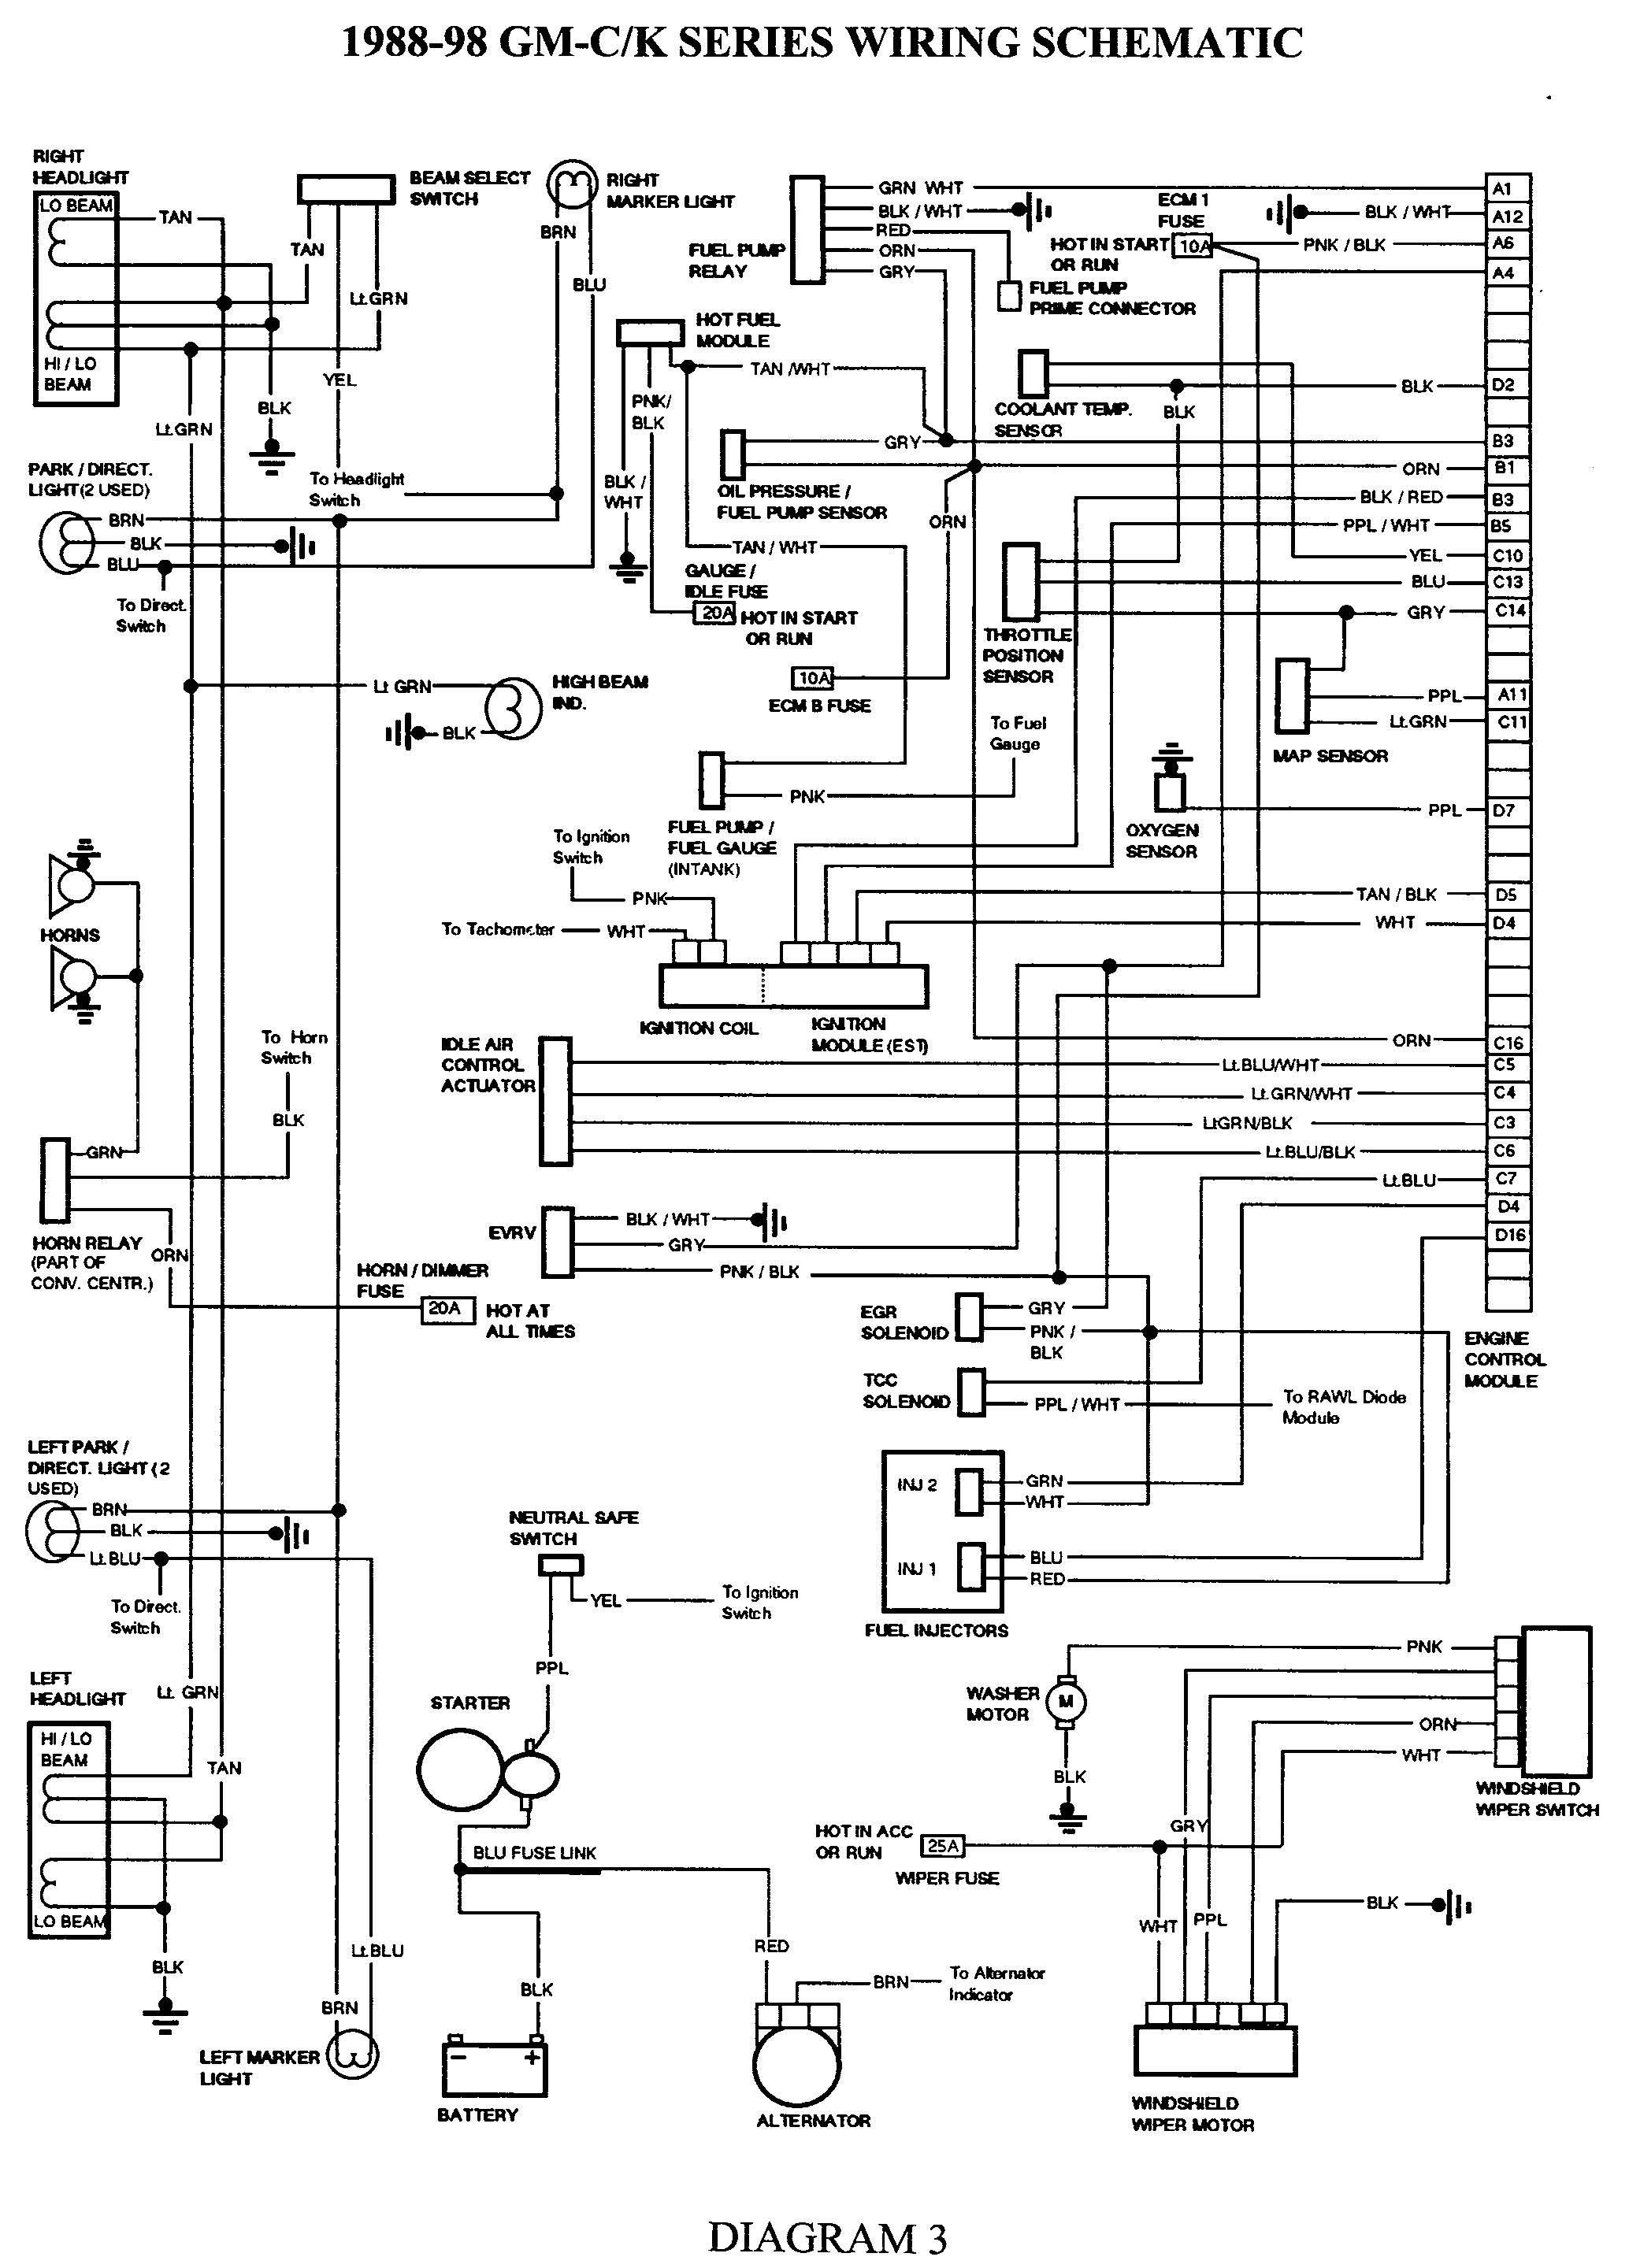 2000 ford taurus alternator wiring diagram image of ford alternator wiring diagram internal regulator chevy  image of ford alternator wiring diagram